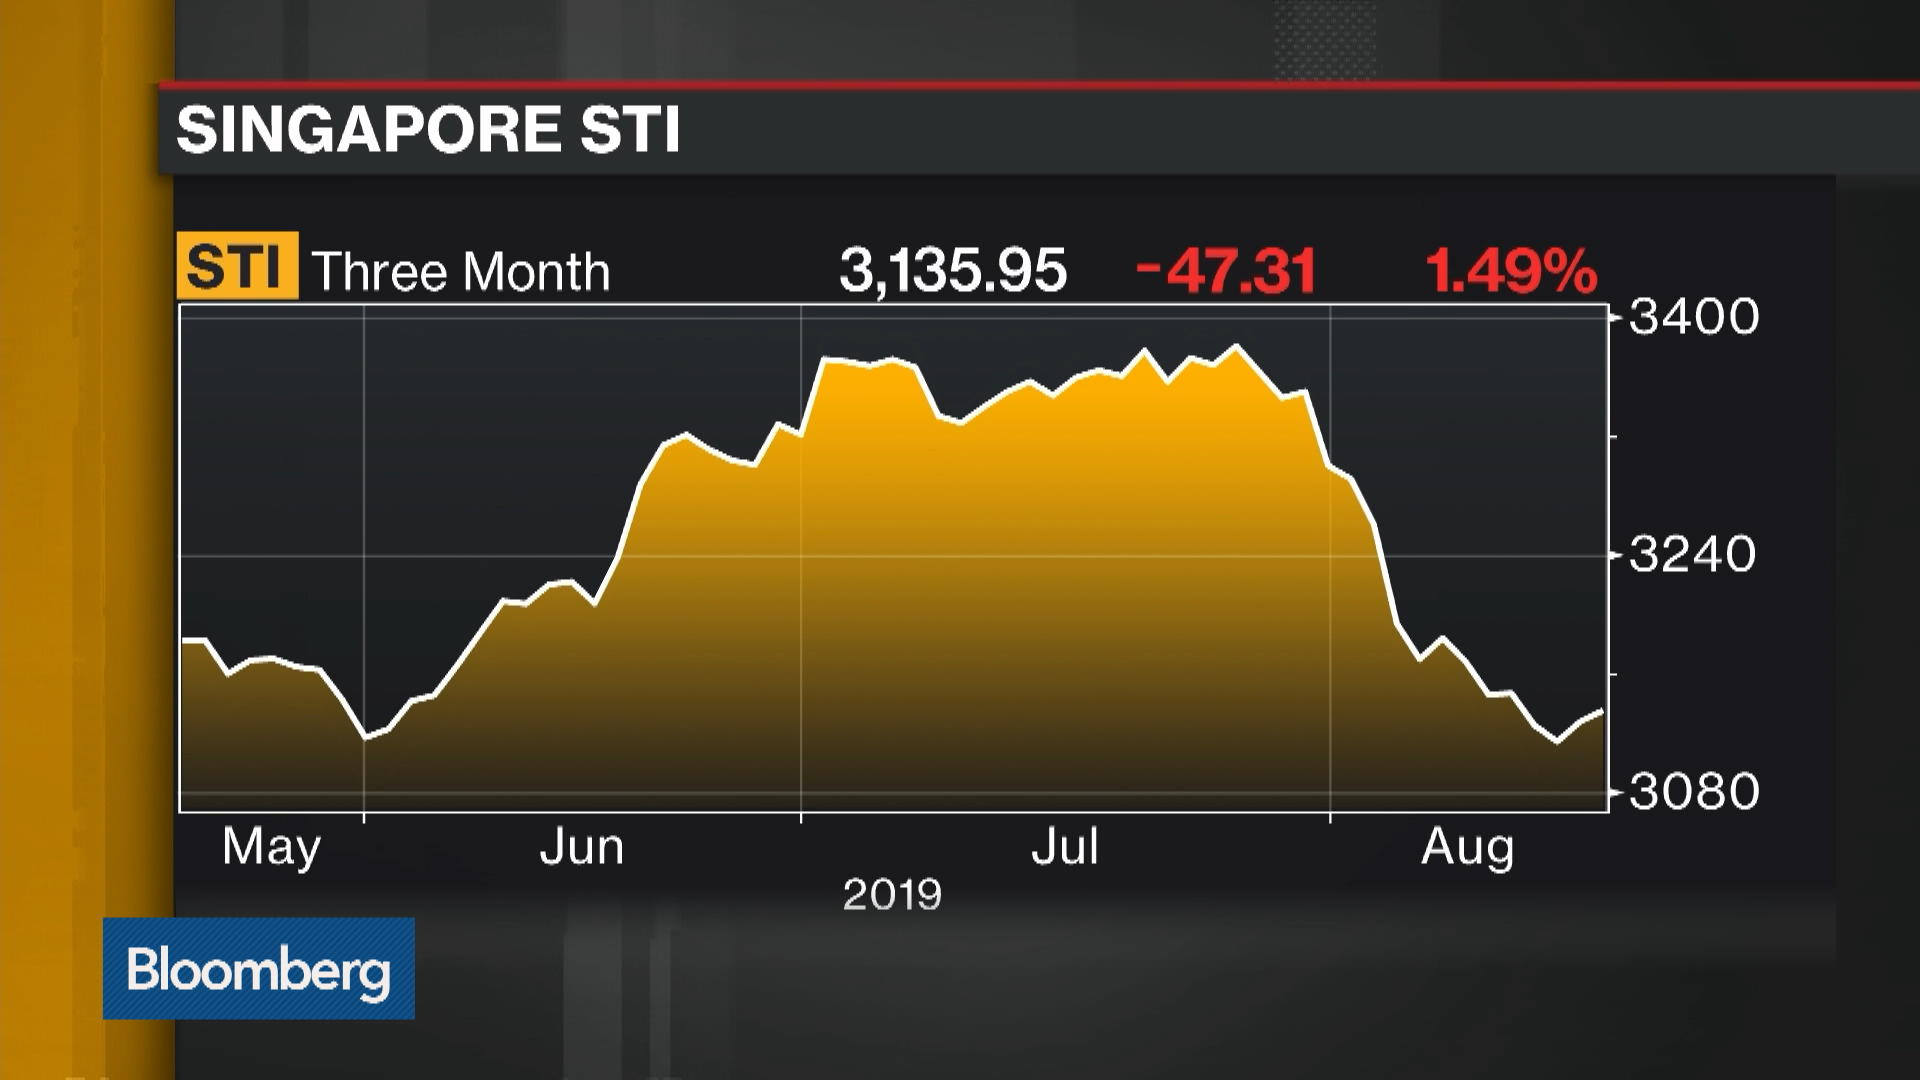 Slowing Singapore Economy Drives Profit Drop